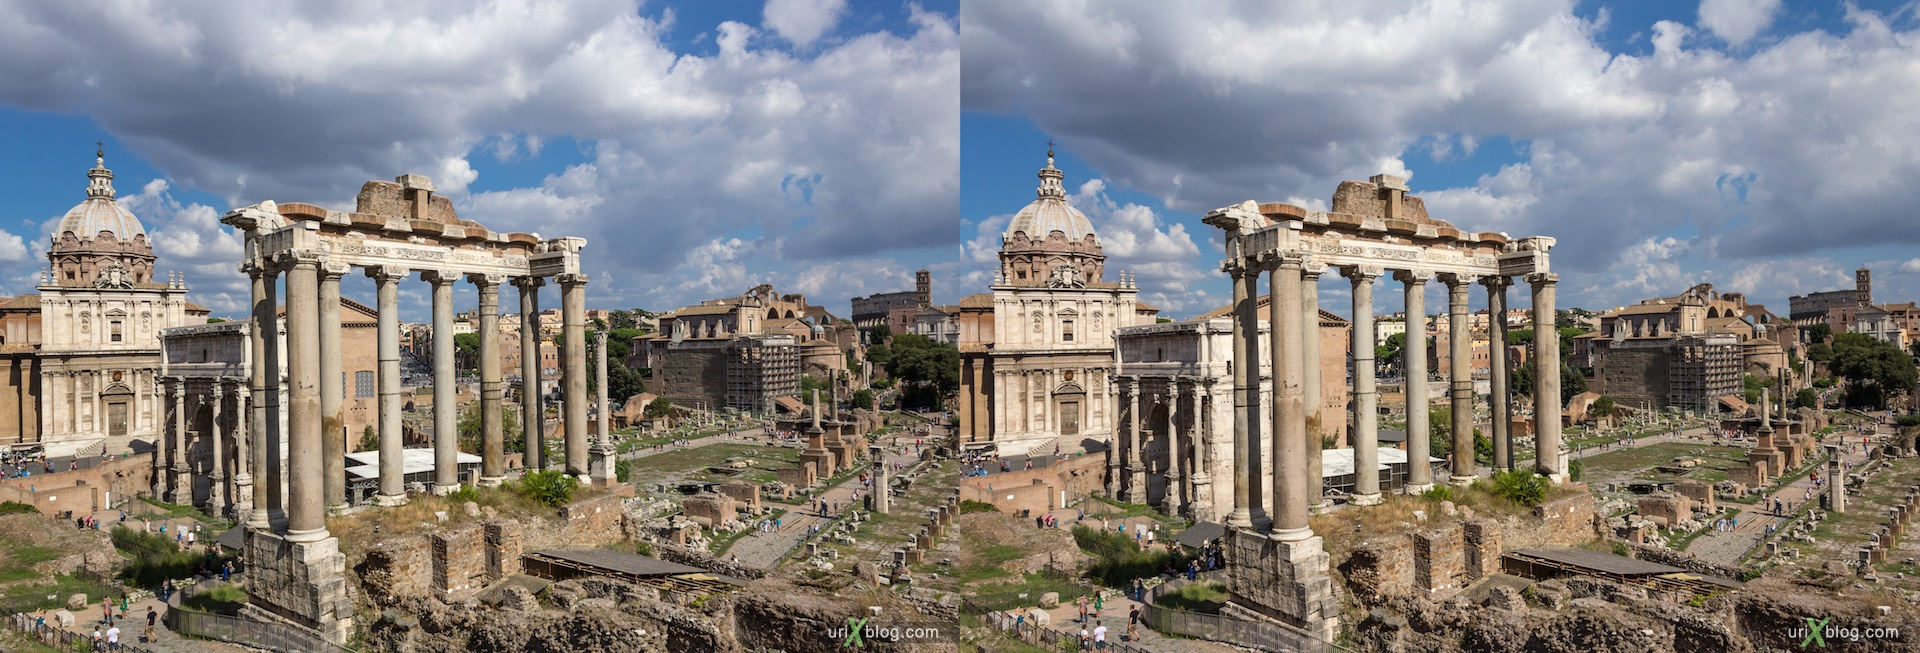 2012, Рим, Италия, Rome, Italy, Римский Форум, Roman Forum, 3D, stereo pair, cross-eyed, crossview, стерео, стереопара